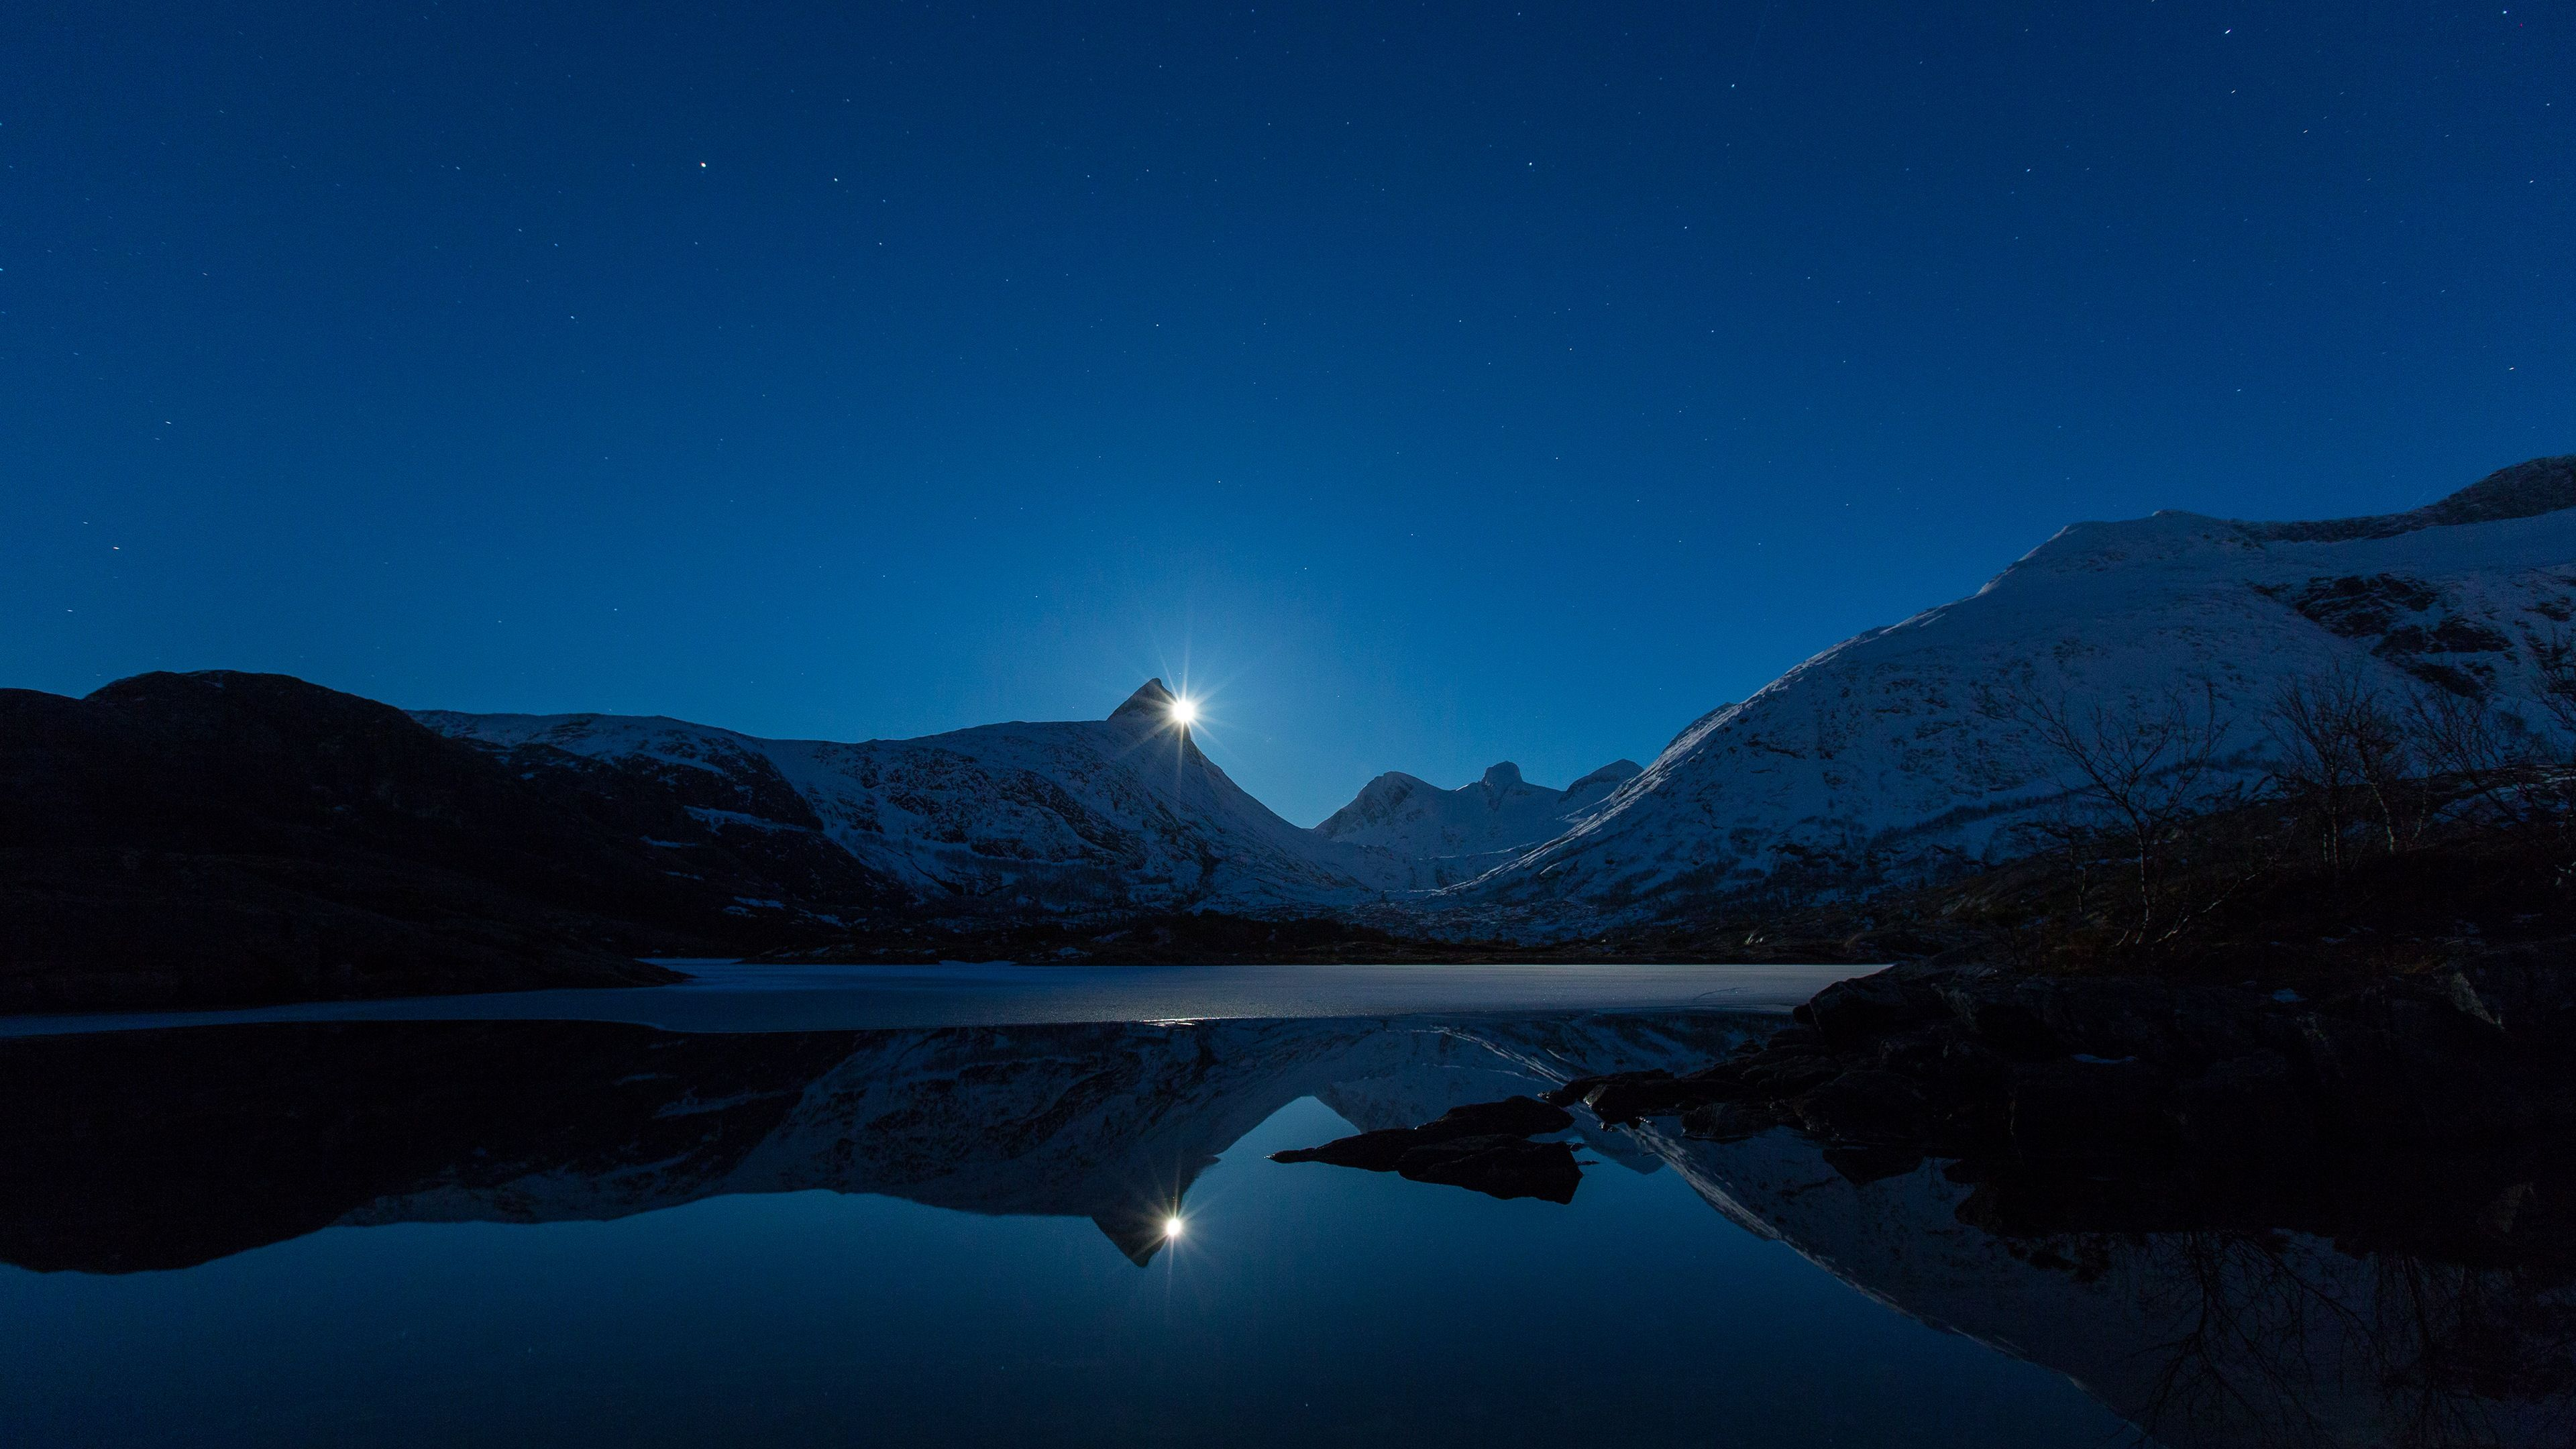 Wallpaper Ndscape Ultra Hd K The Moon And Mountains Reflecting In The Water